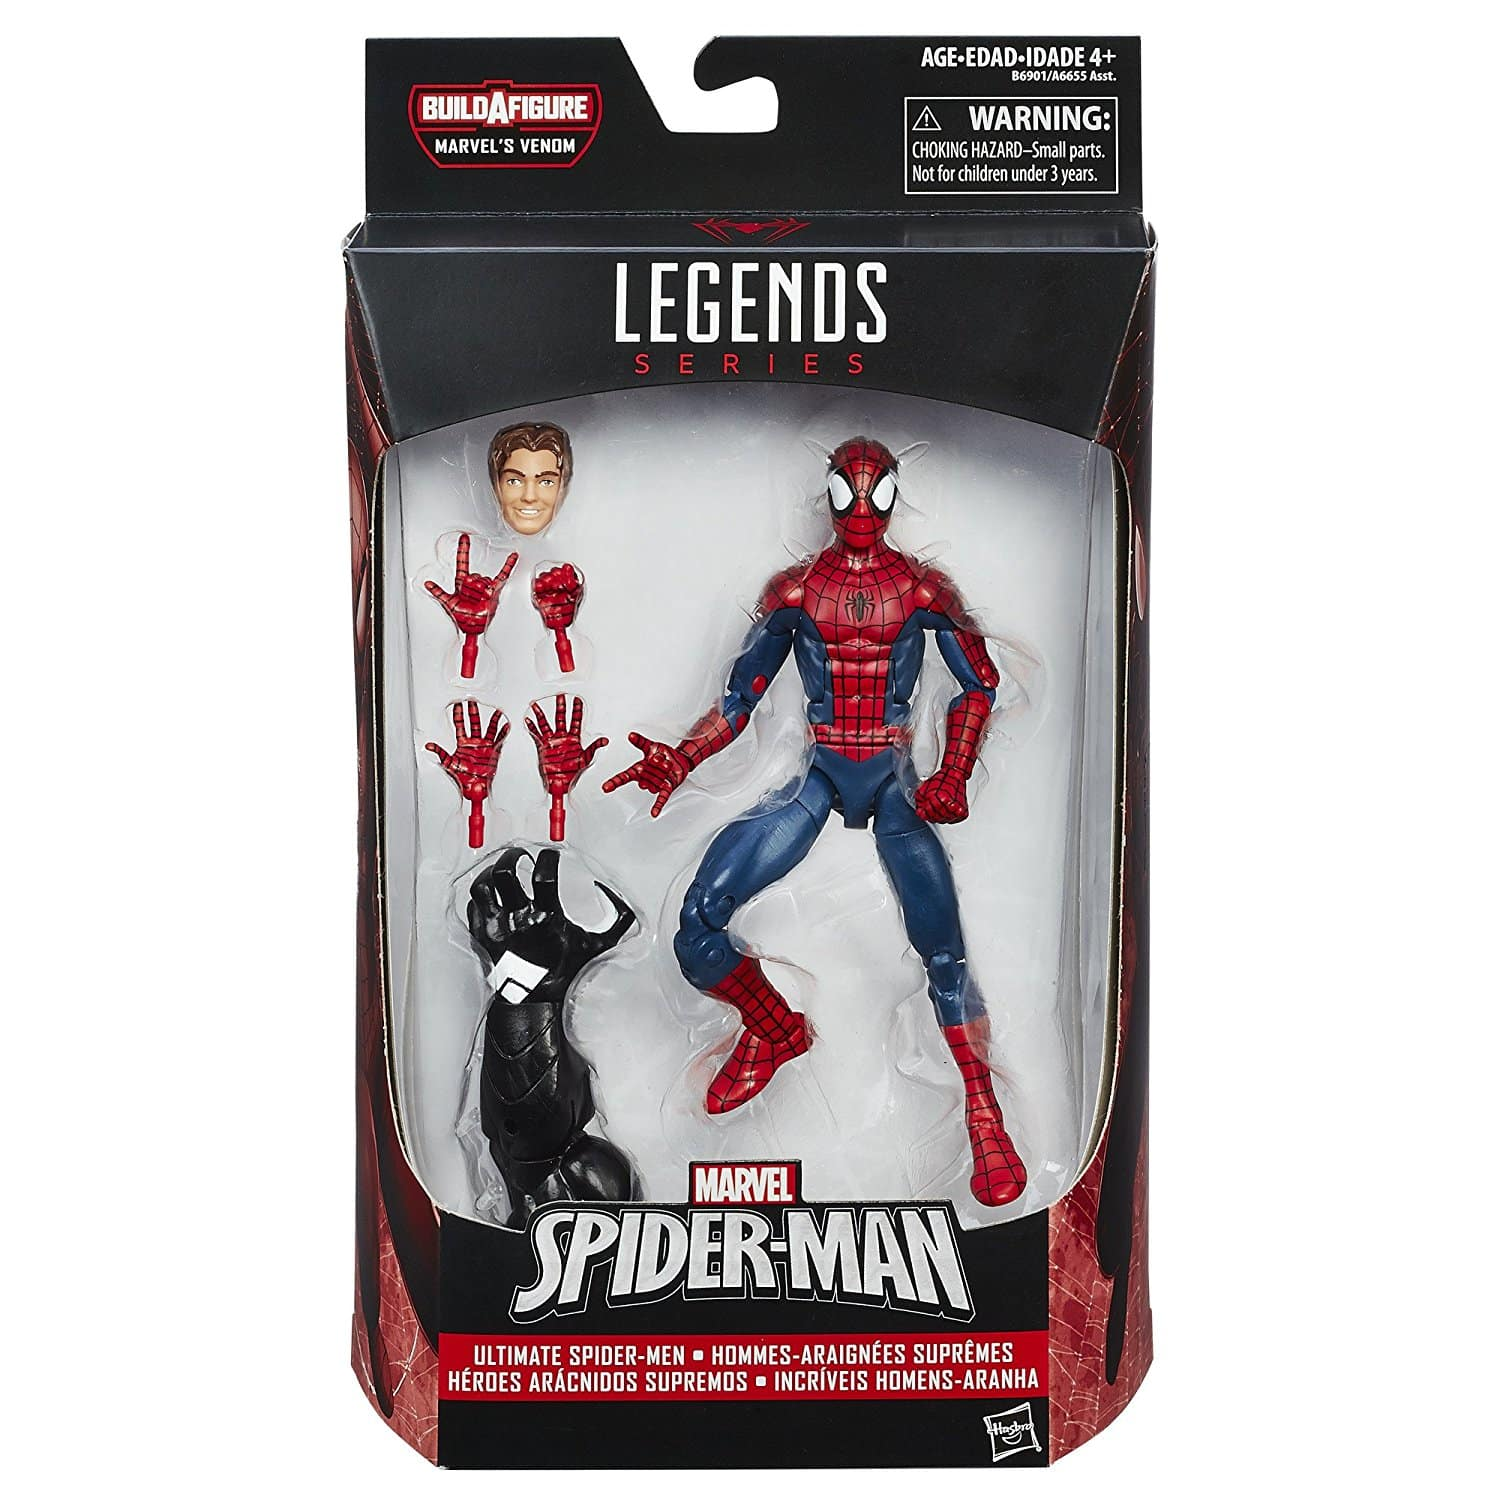 Boneco Marvel Venom Build-a-Figure Legends Series Homem Aranha 16 cm